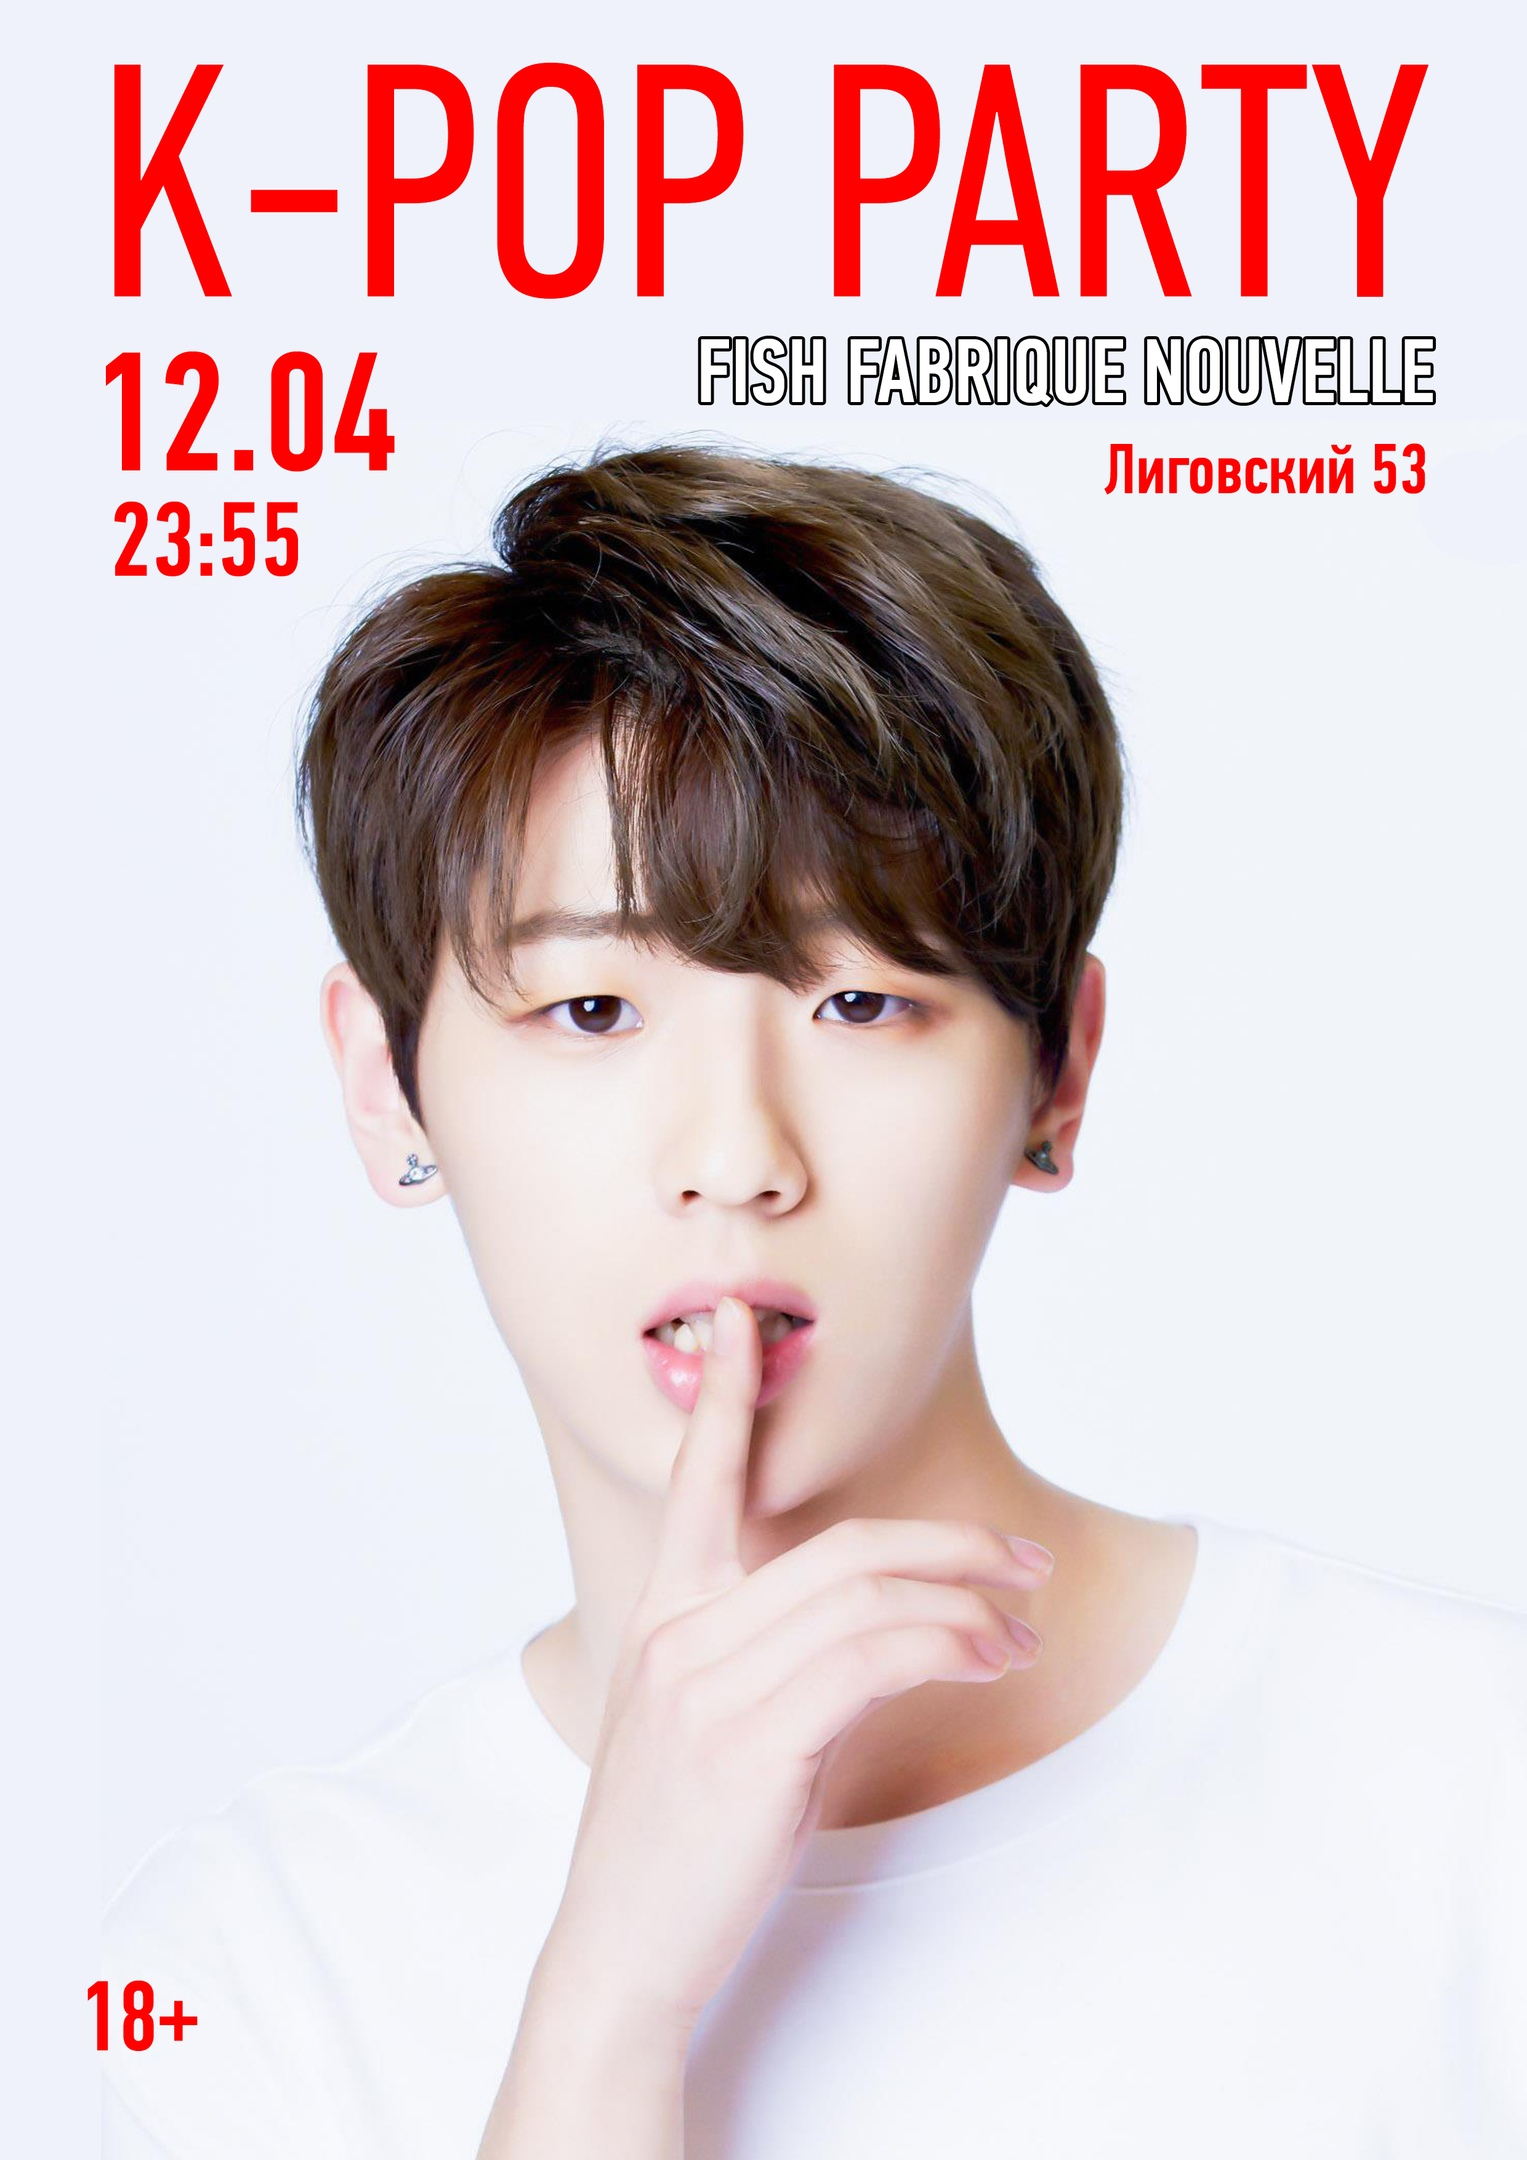 K-POP Party 12/04/2019 @ FishFabrique